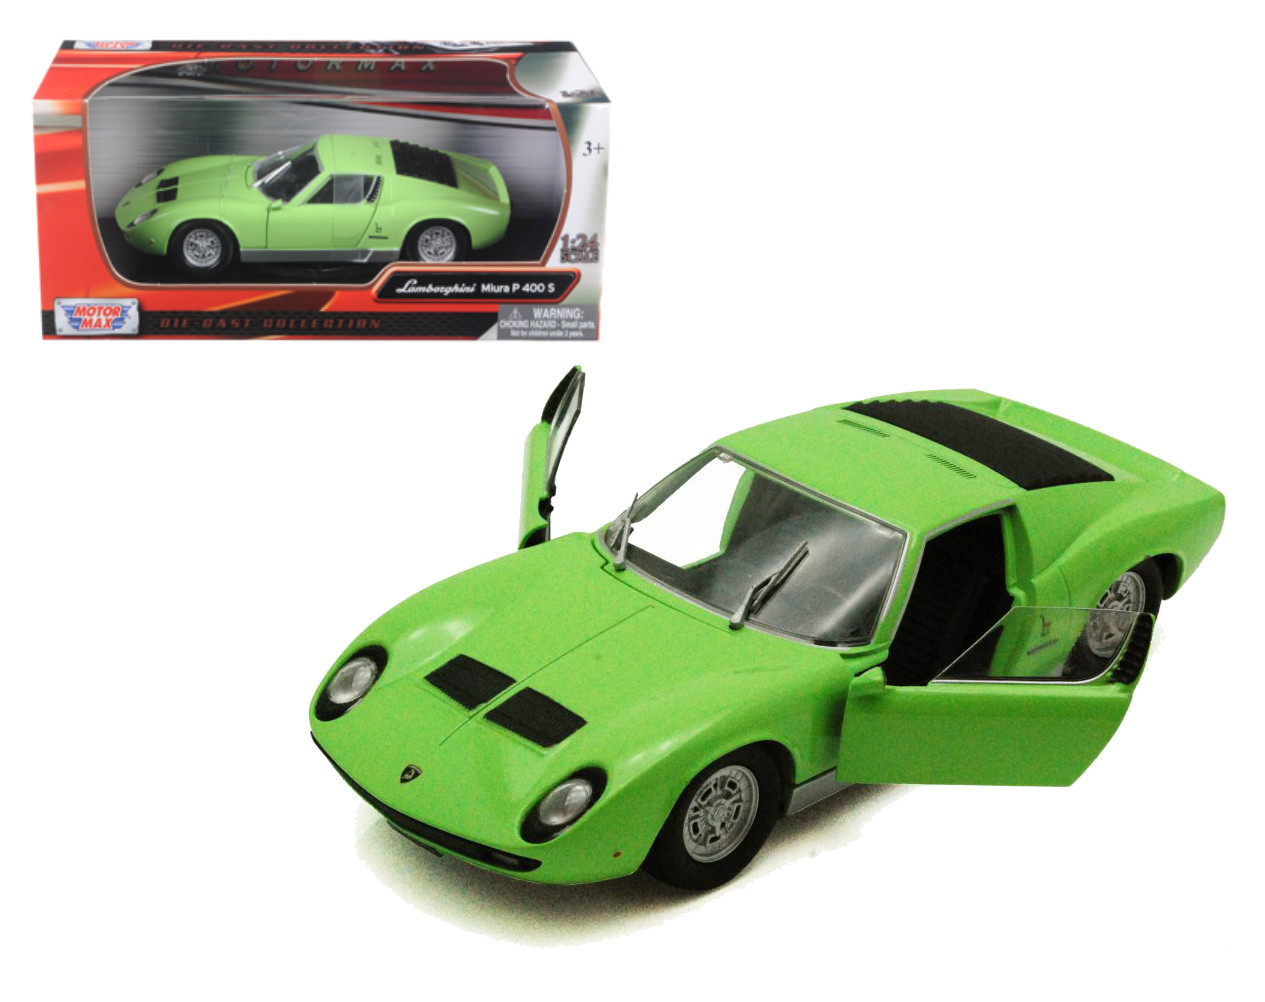 Lamborghini Miura P400 S Green 1 24 Scale Diecast Car Model By